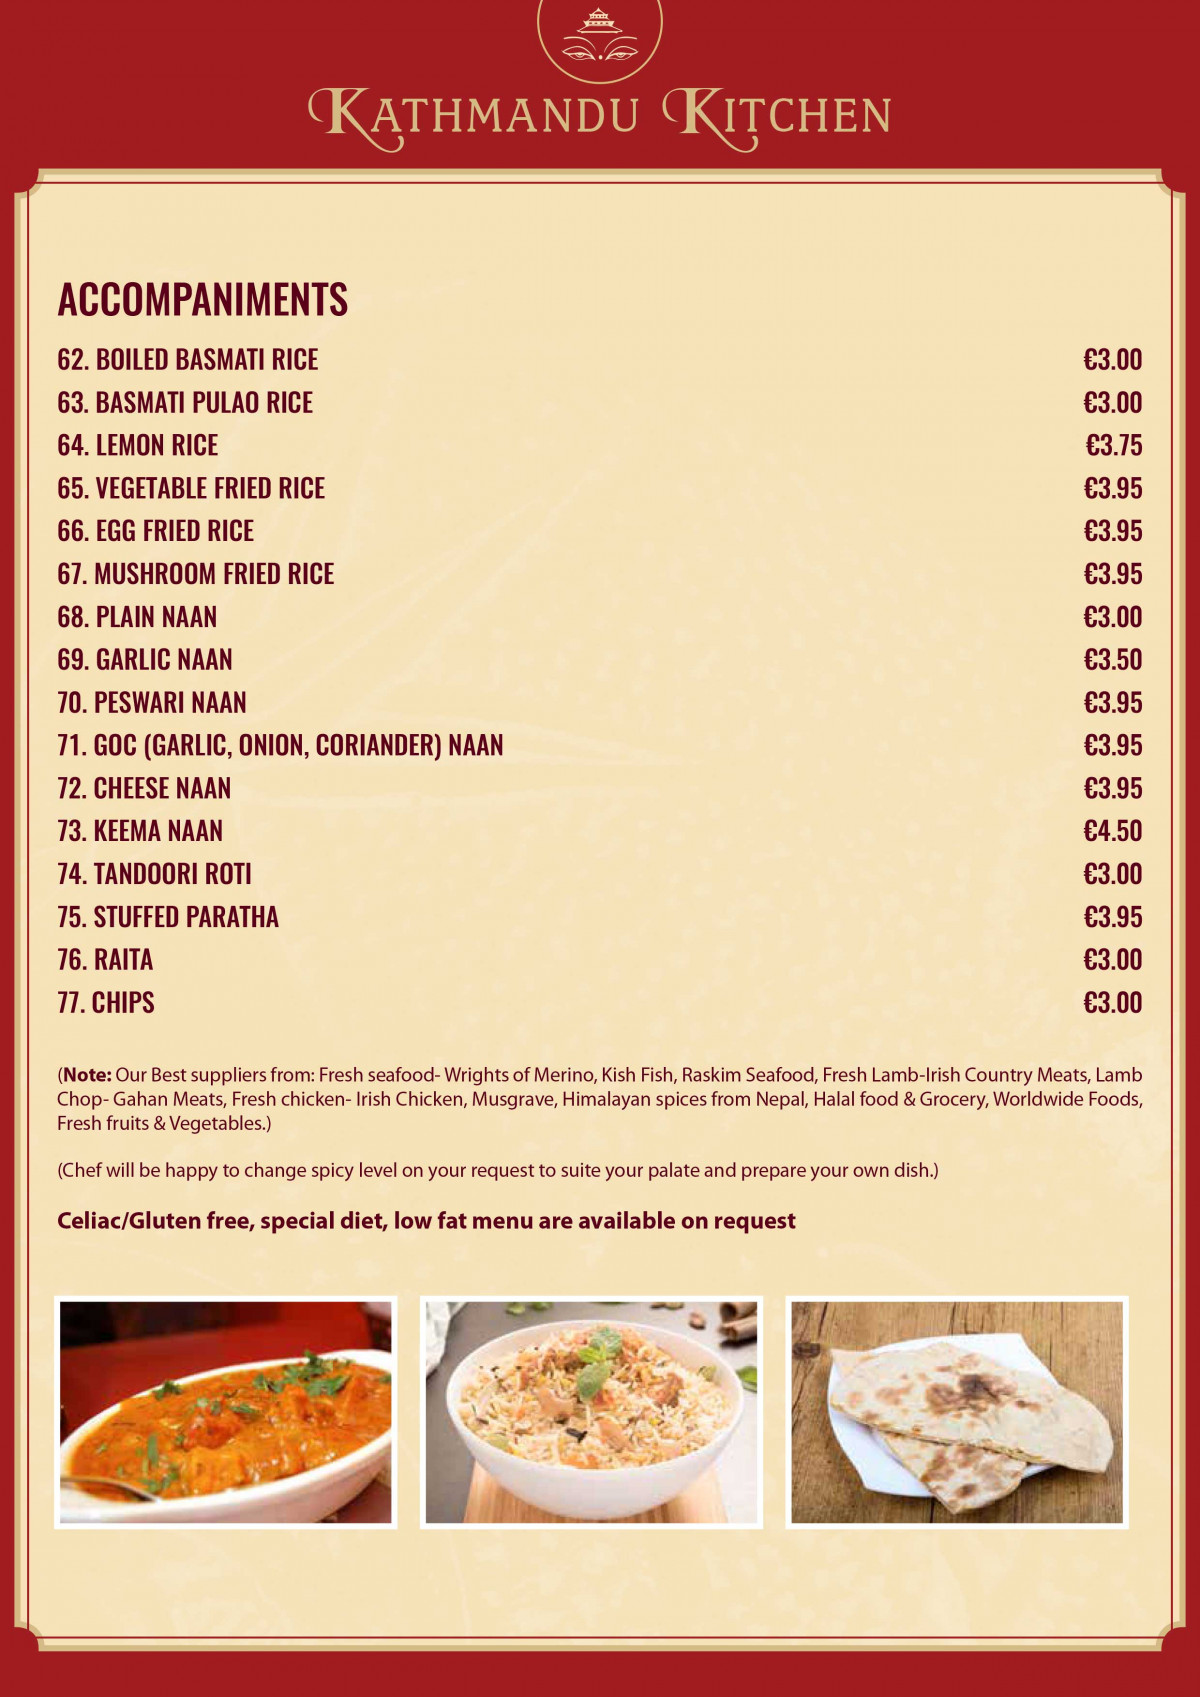 Kathmandu Kitchen: 50% off the first table of the night with